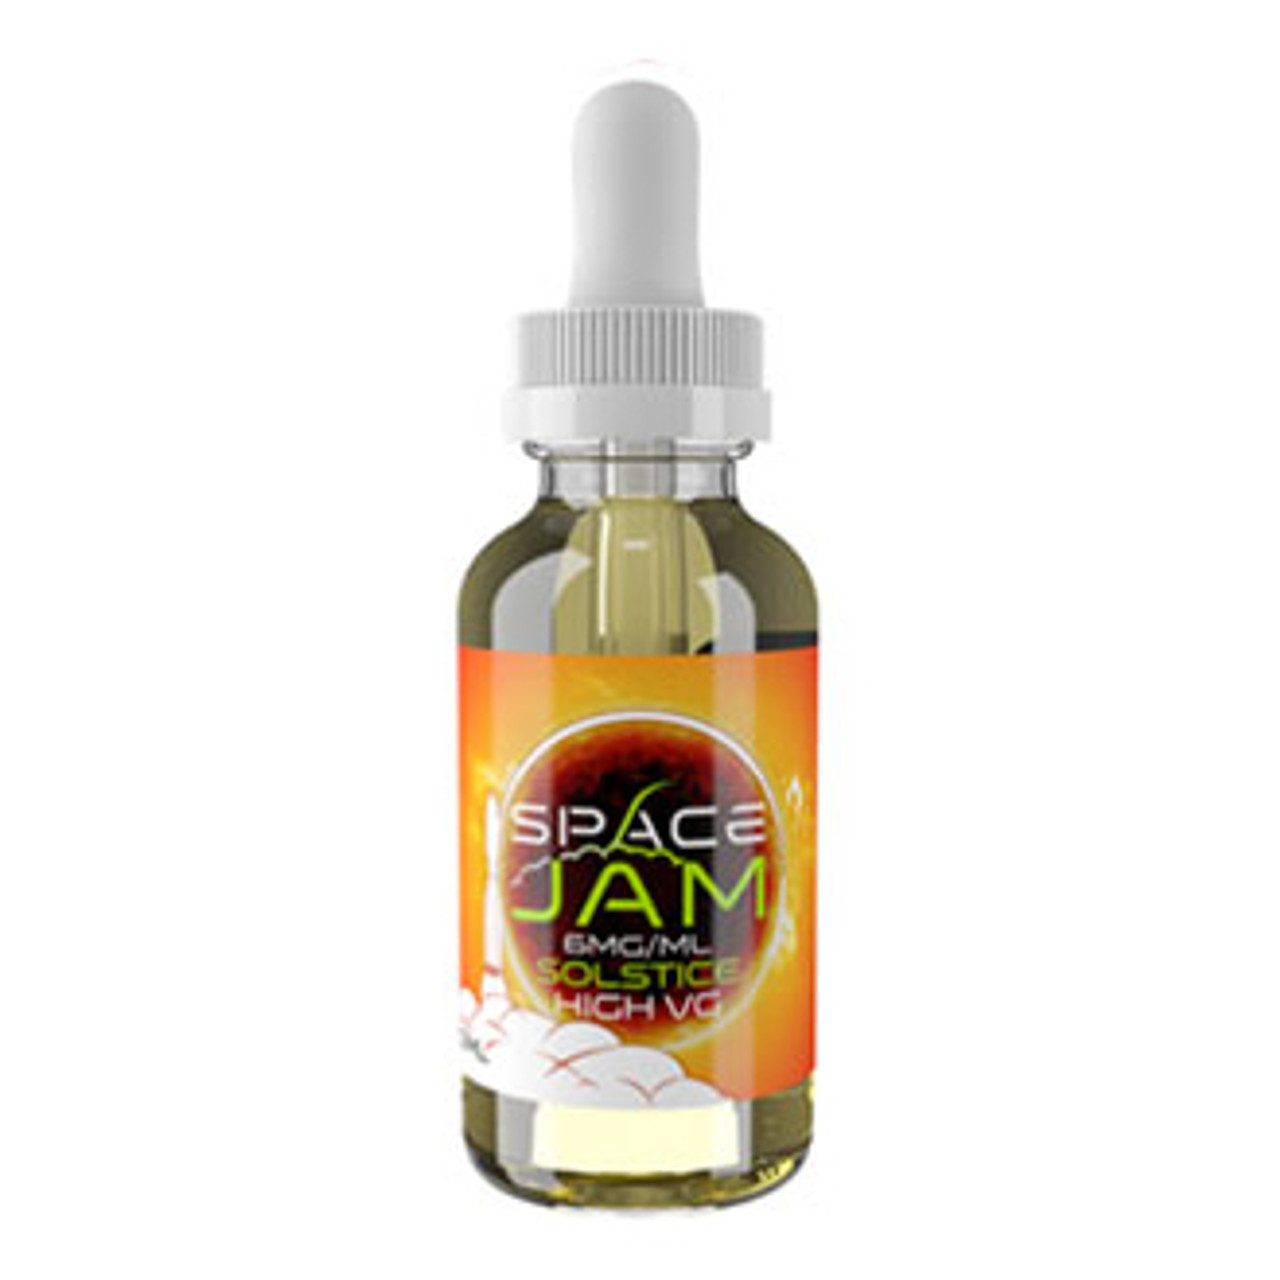 Pulsar ( Solstice ) - High VG | Space Jam | 15ml & 30ml options